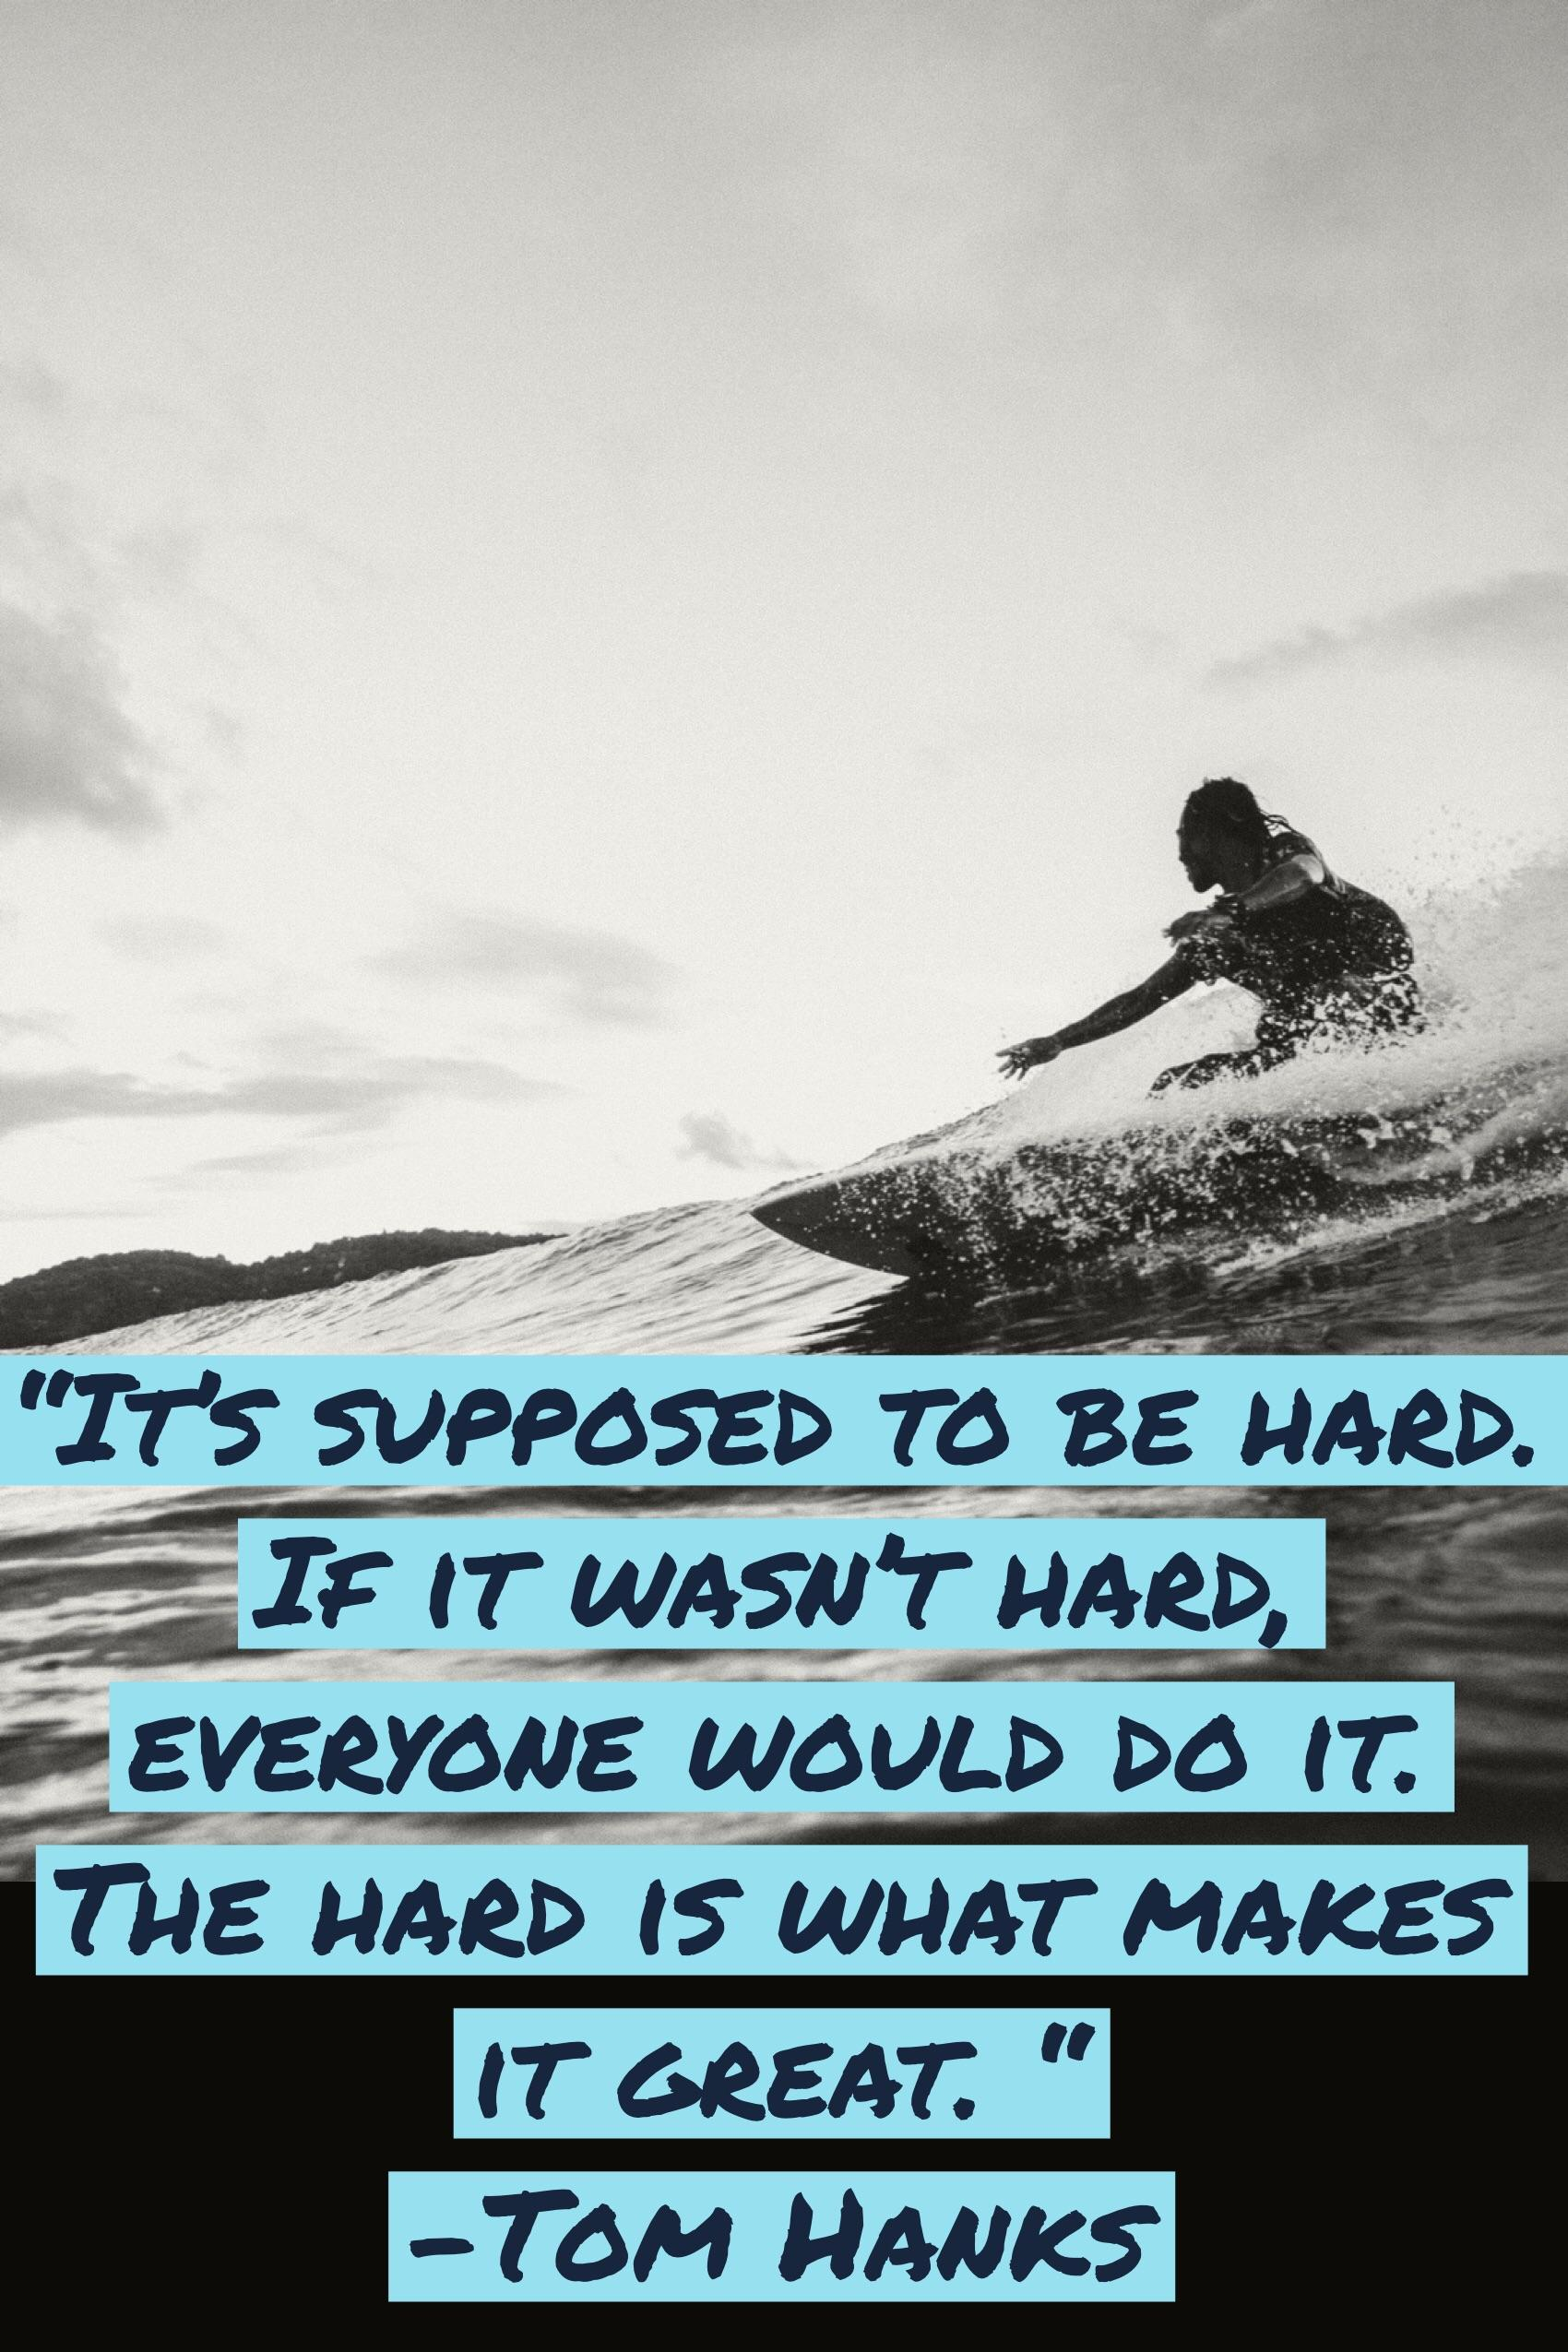 [image] It's supposed to be hard